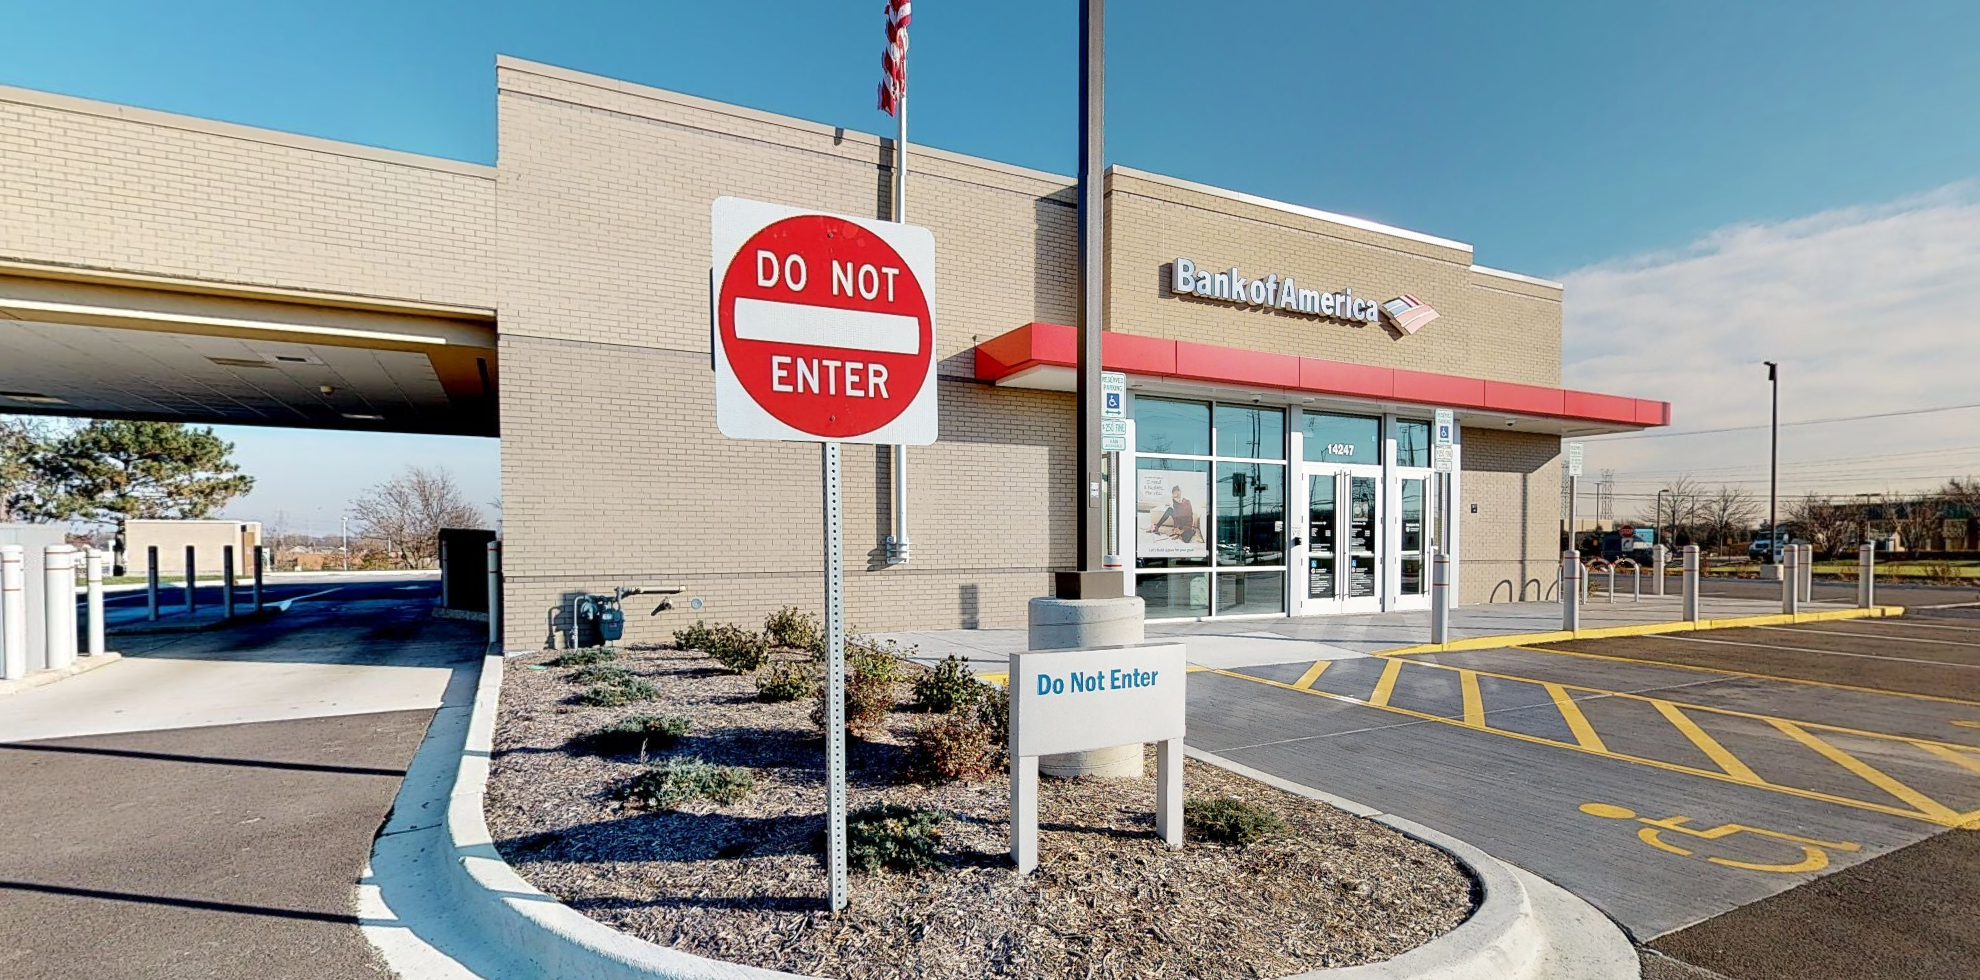 Bank of America financial center with drive-thru ATM   14247 S Bell Rd, Homer Glen, IL 60491